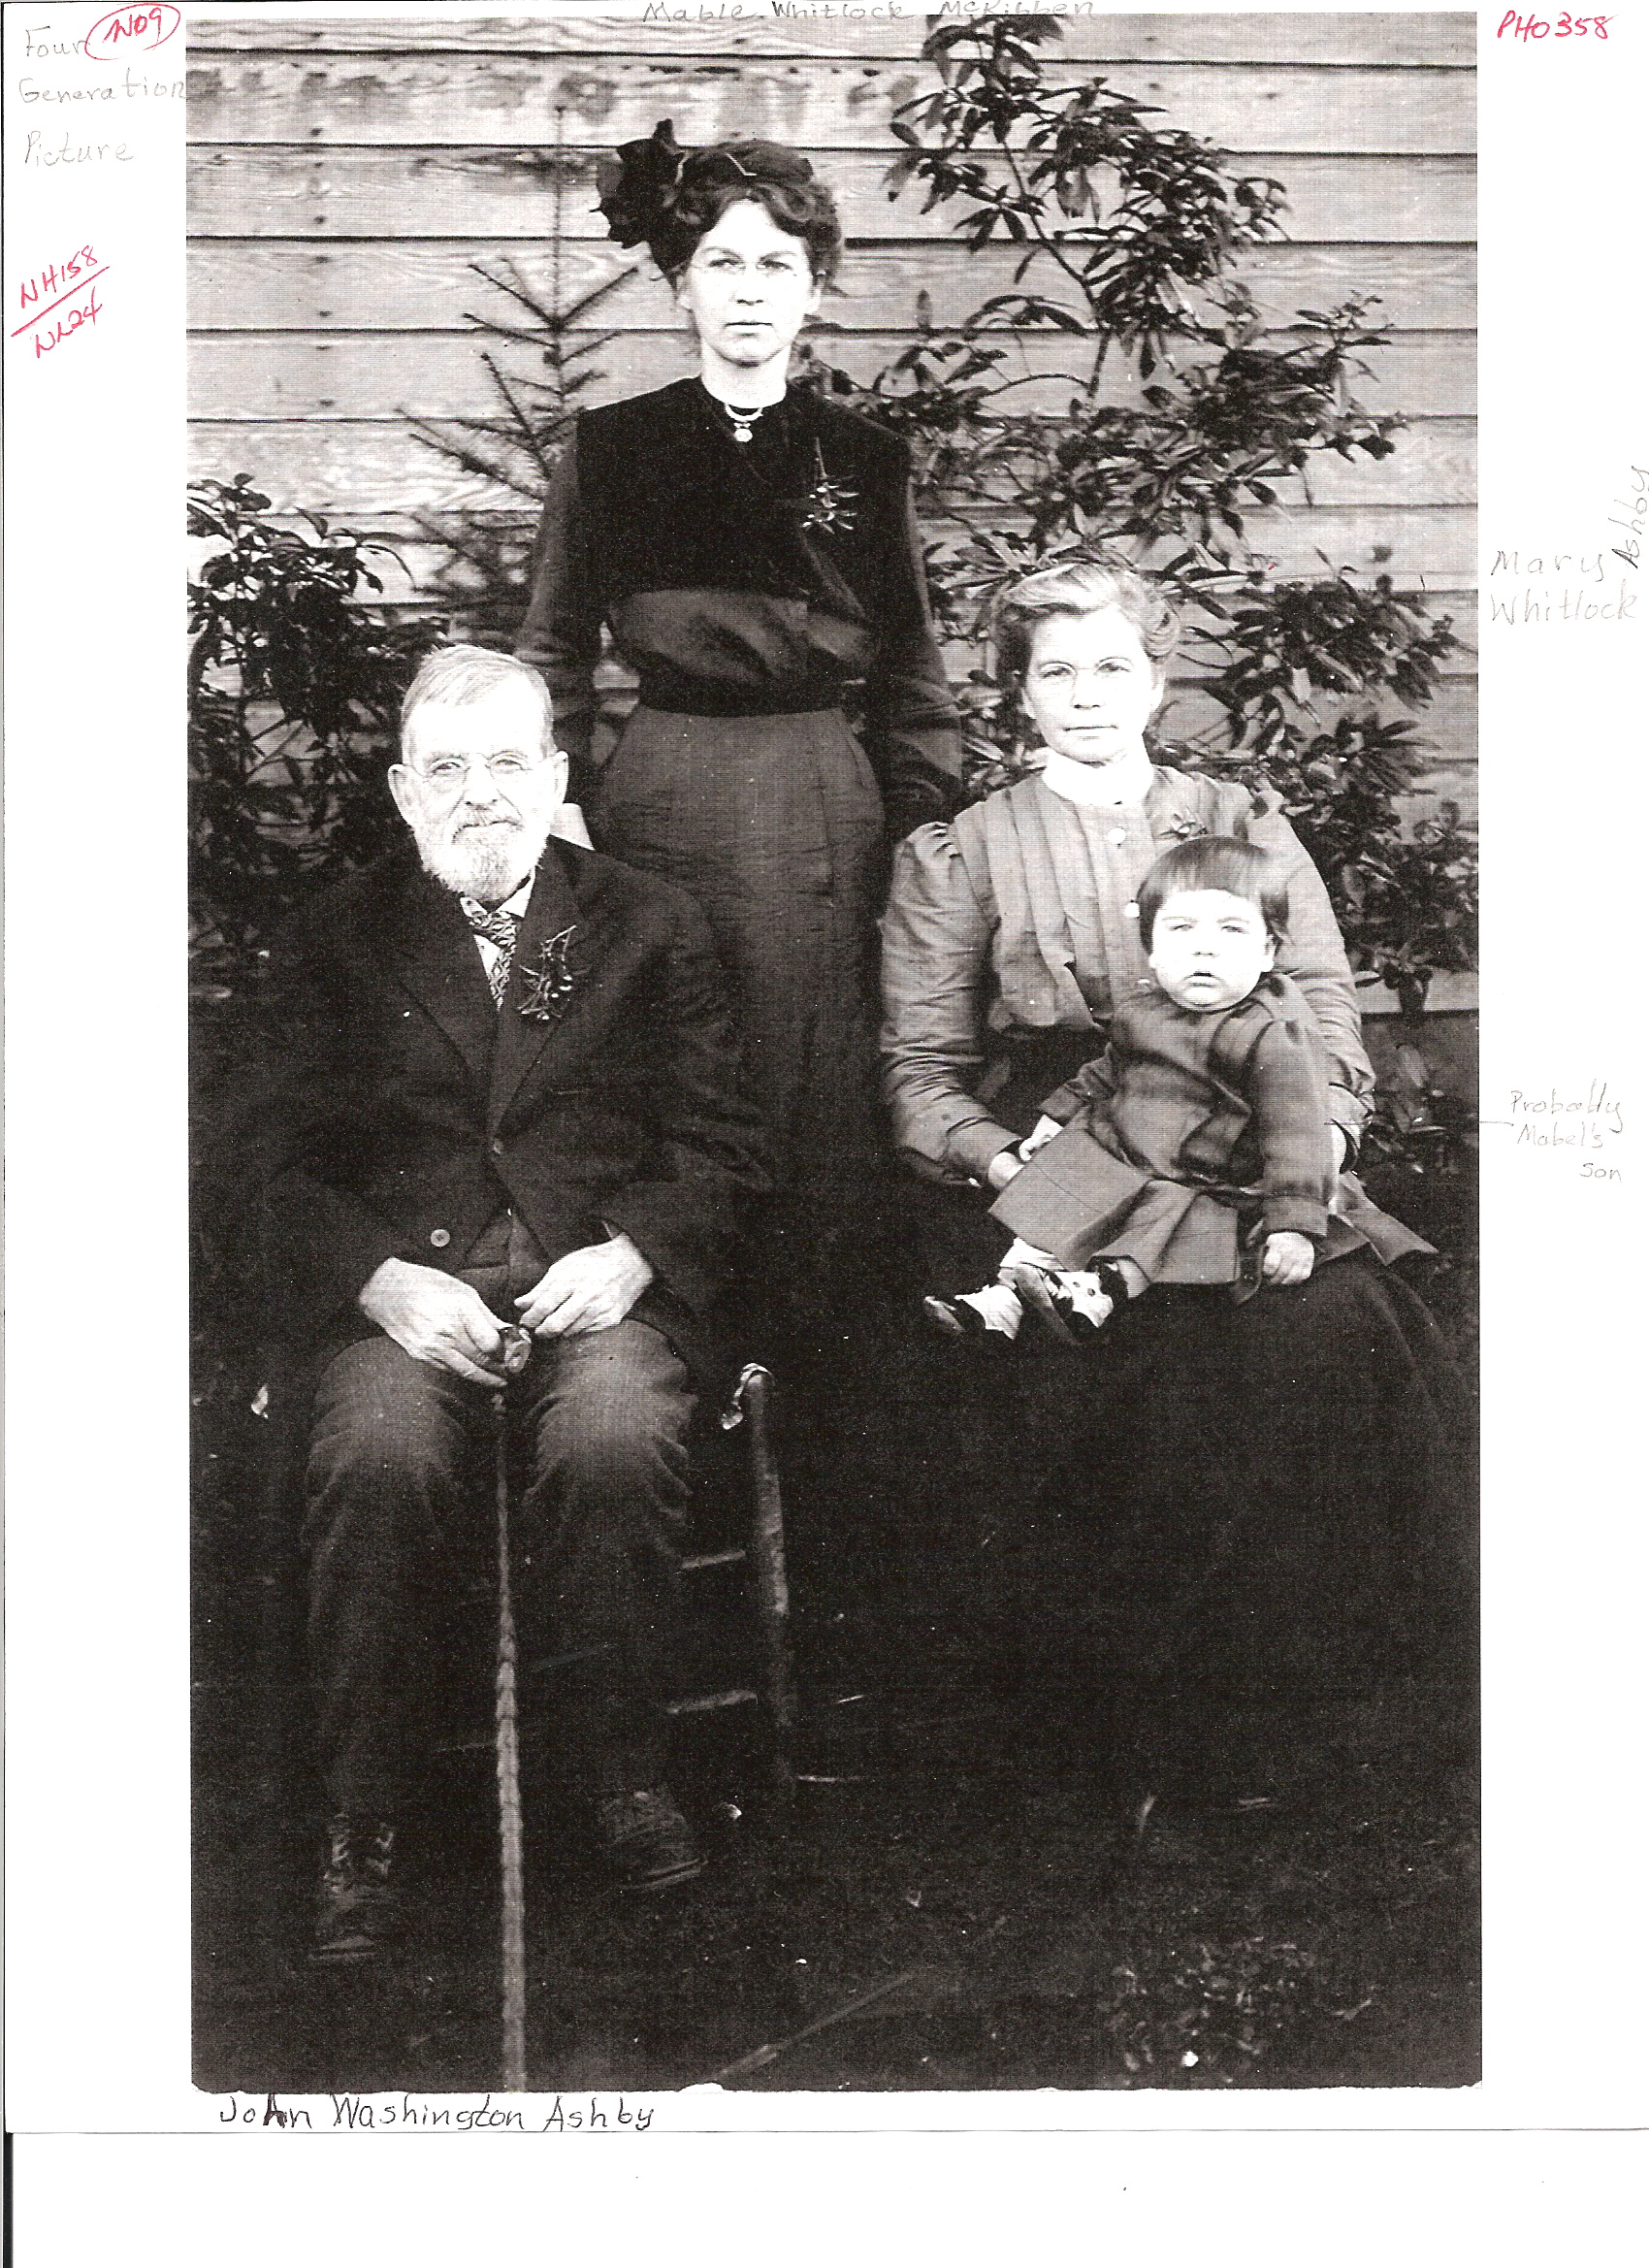 Whitlock Family One-Name Study: Family photos index page 2